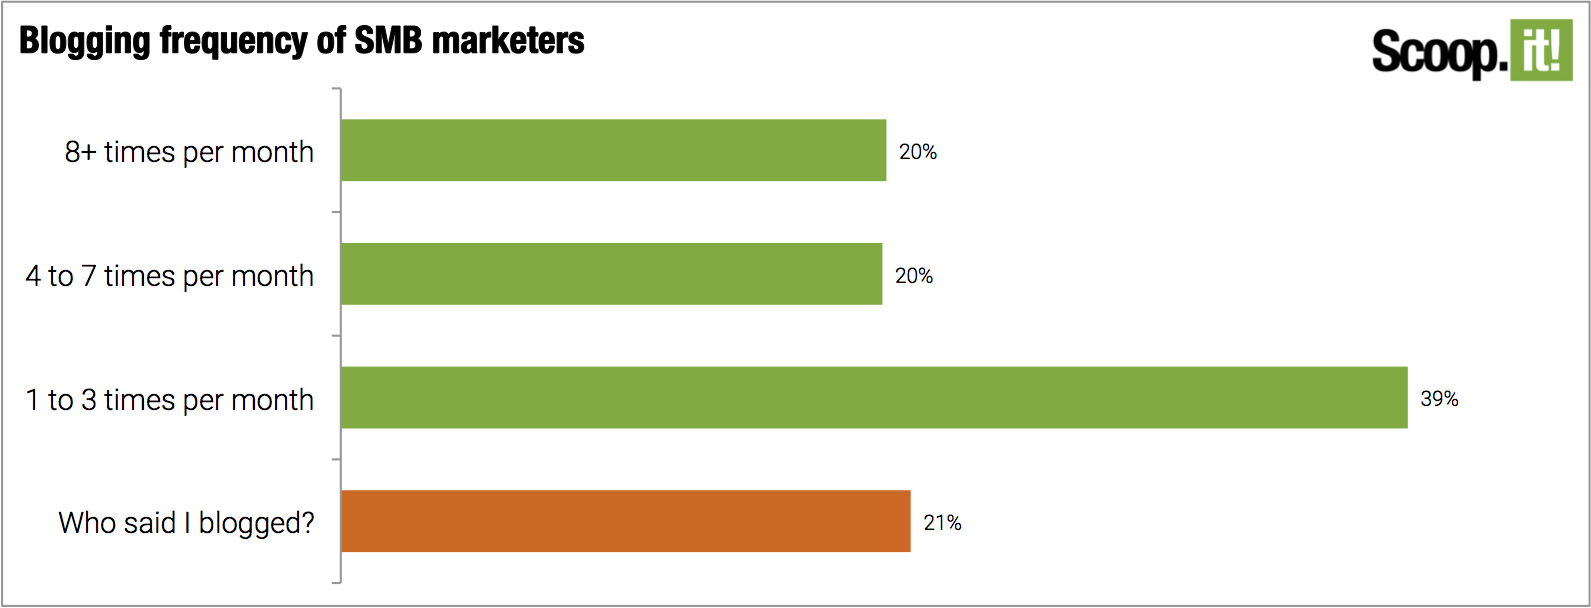 Blogging frequency of SMB marketers